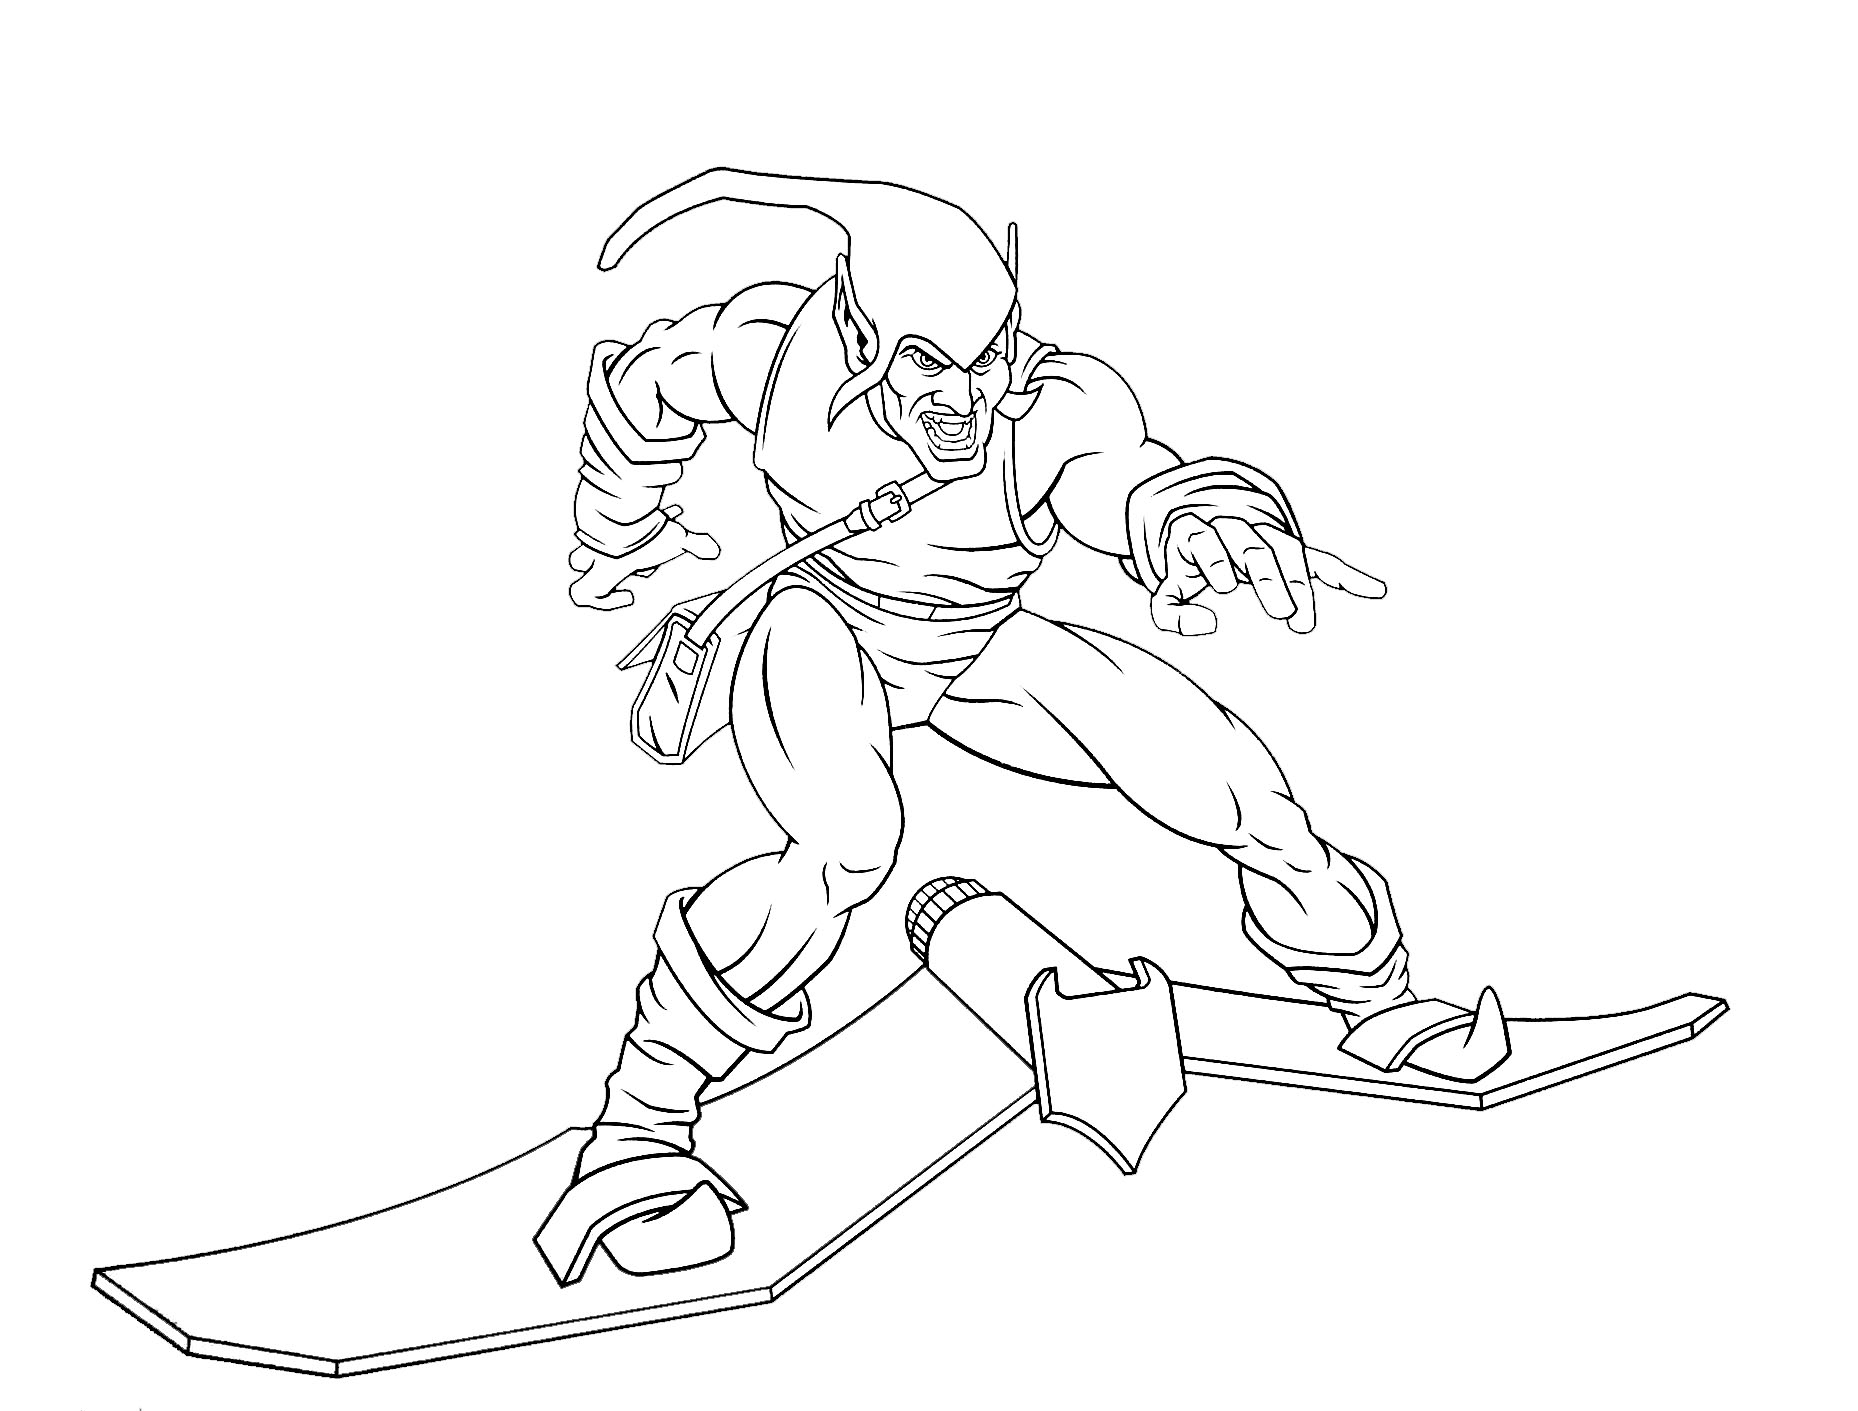 Spiderman Gratuit 5 - Coloriage Spiderman - Coloriages pour Coloriage De Spiderman